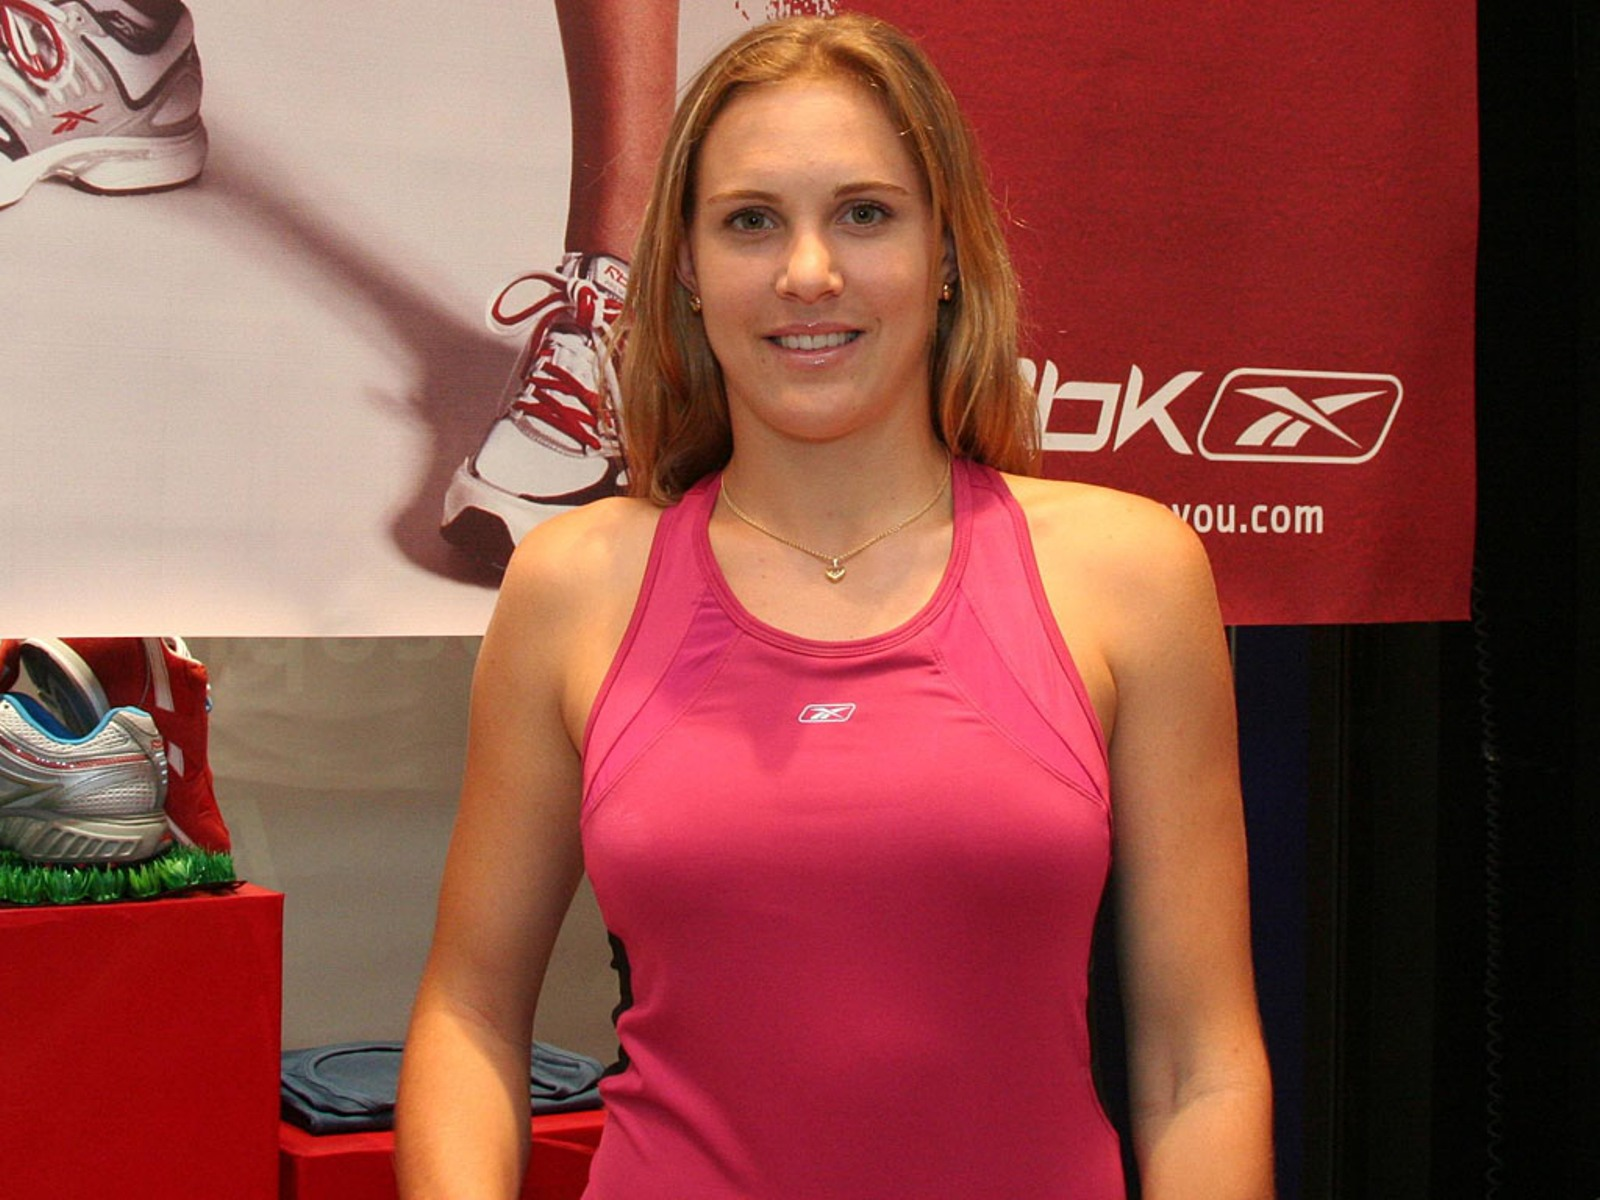 tennis player nicole vaidisova/net/pics/download